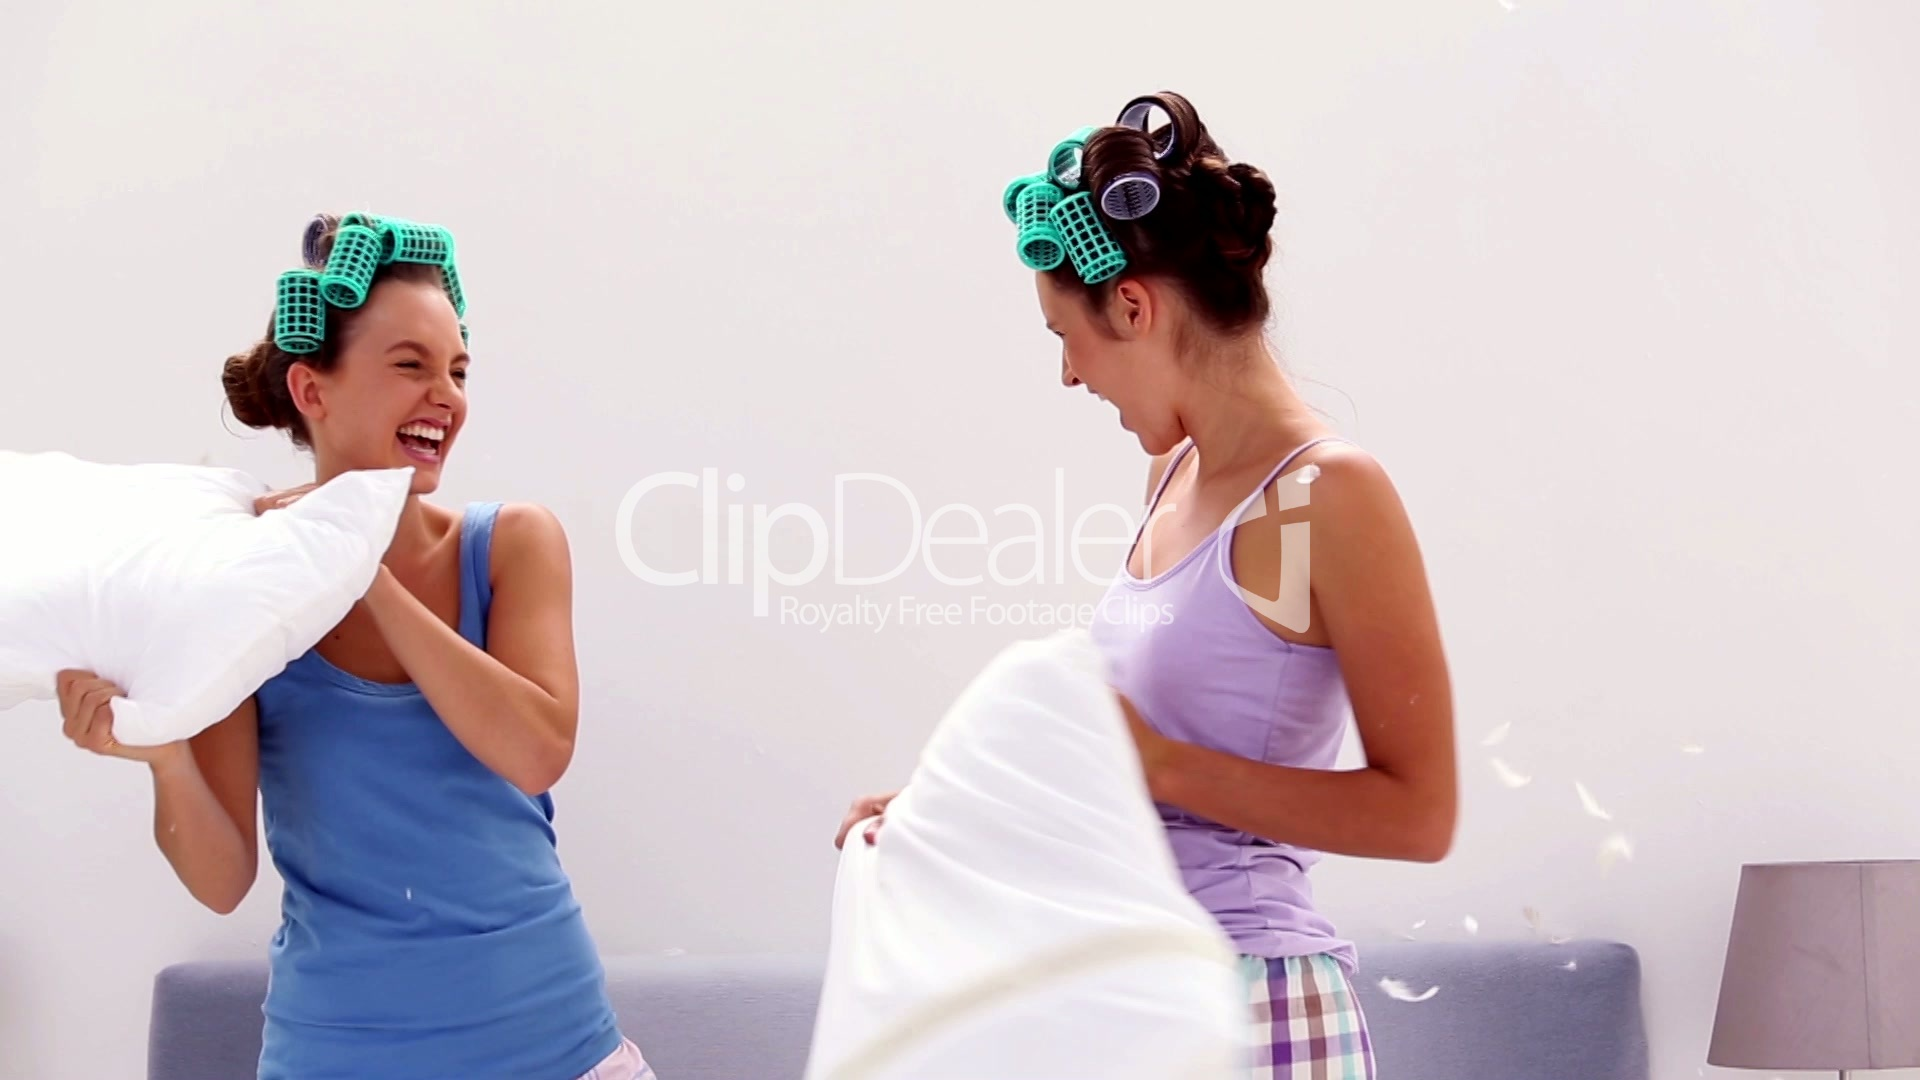 pillow hair rollers. hair rollers · pillow fight